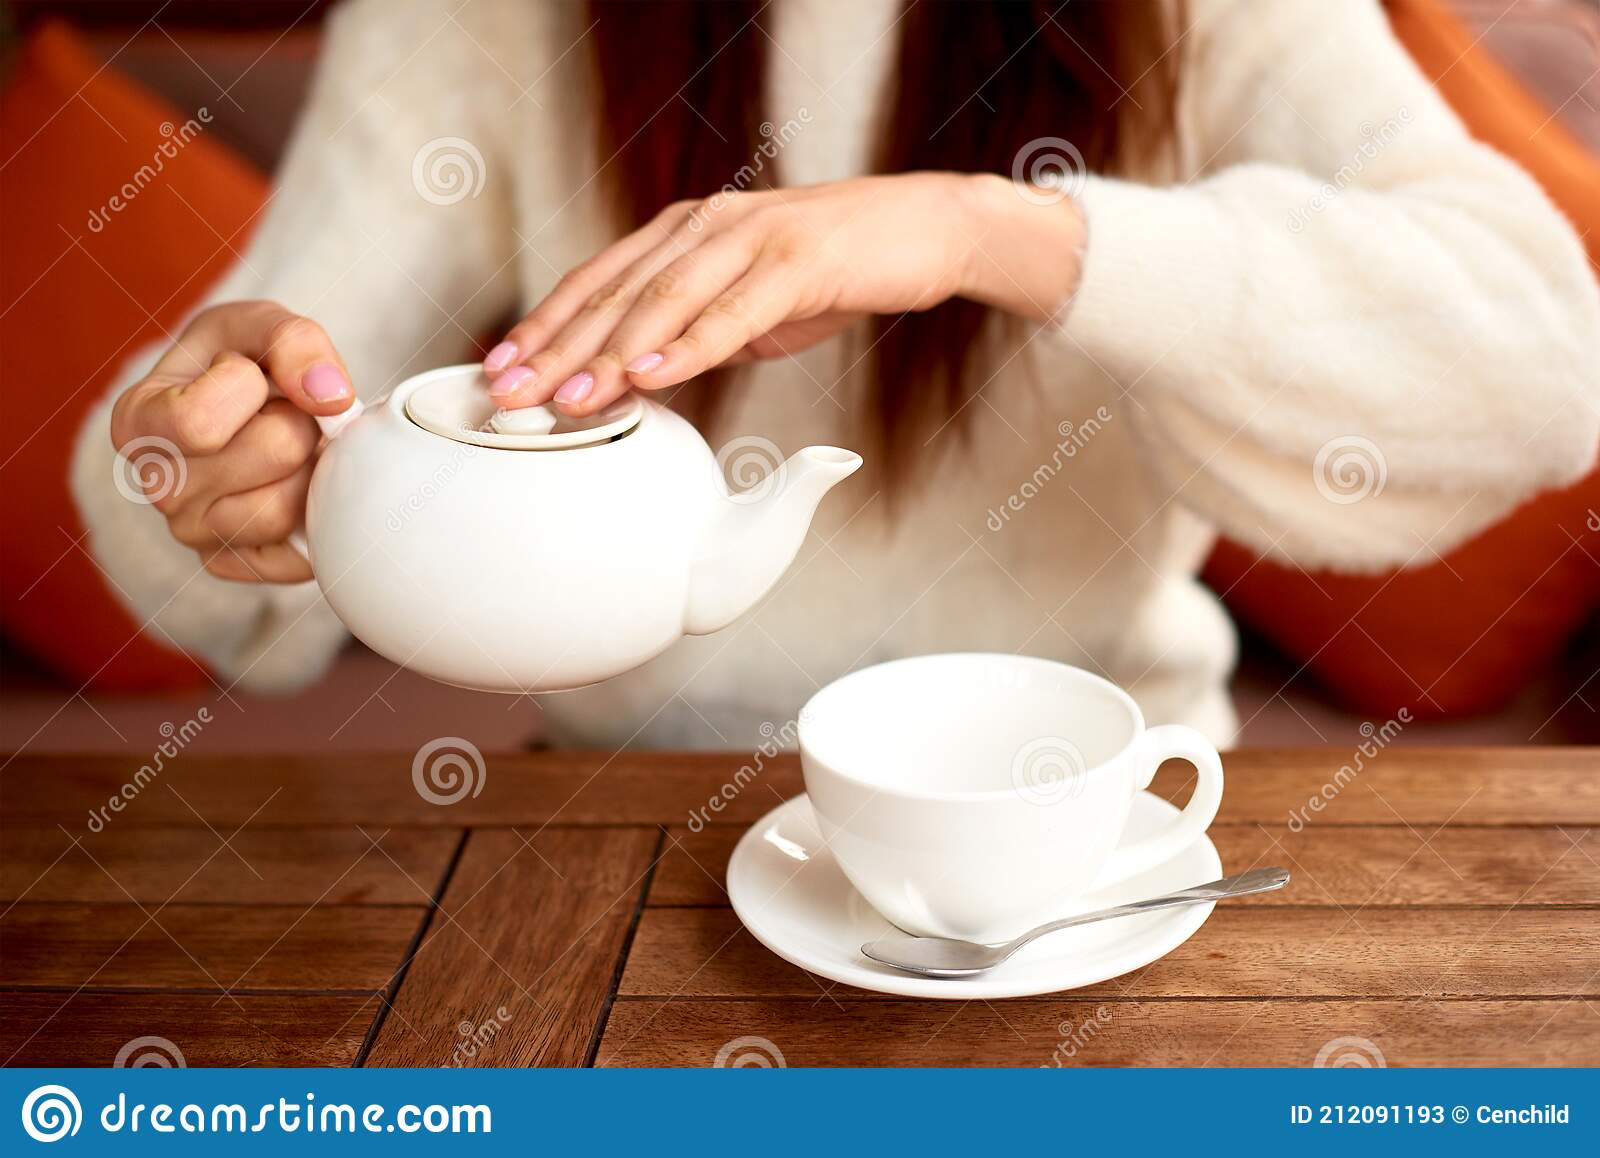 472 Female Hands Pouring Tea Cup Photos Free Royalty Free Stock Photos From Dreamstime Hd wallpaper tea cup kettle hands